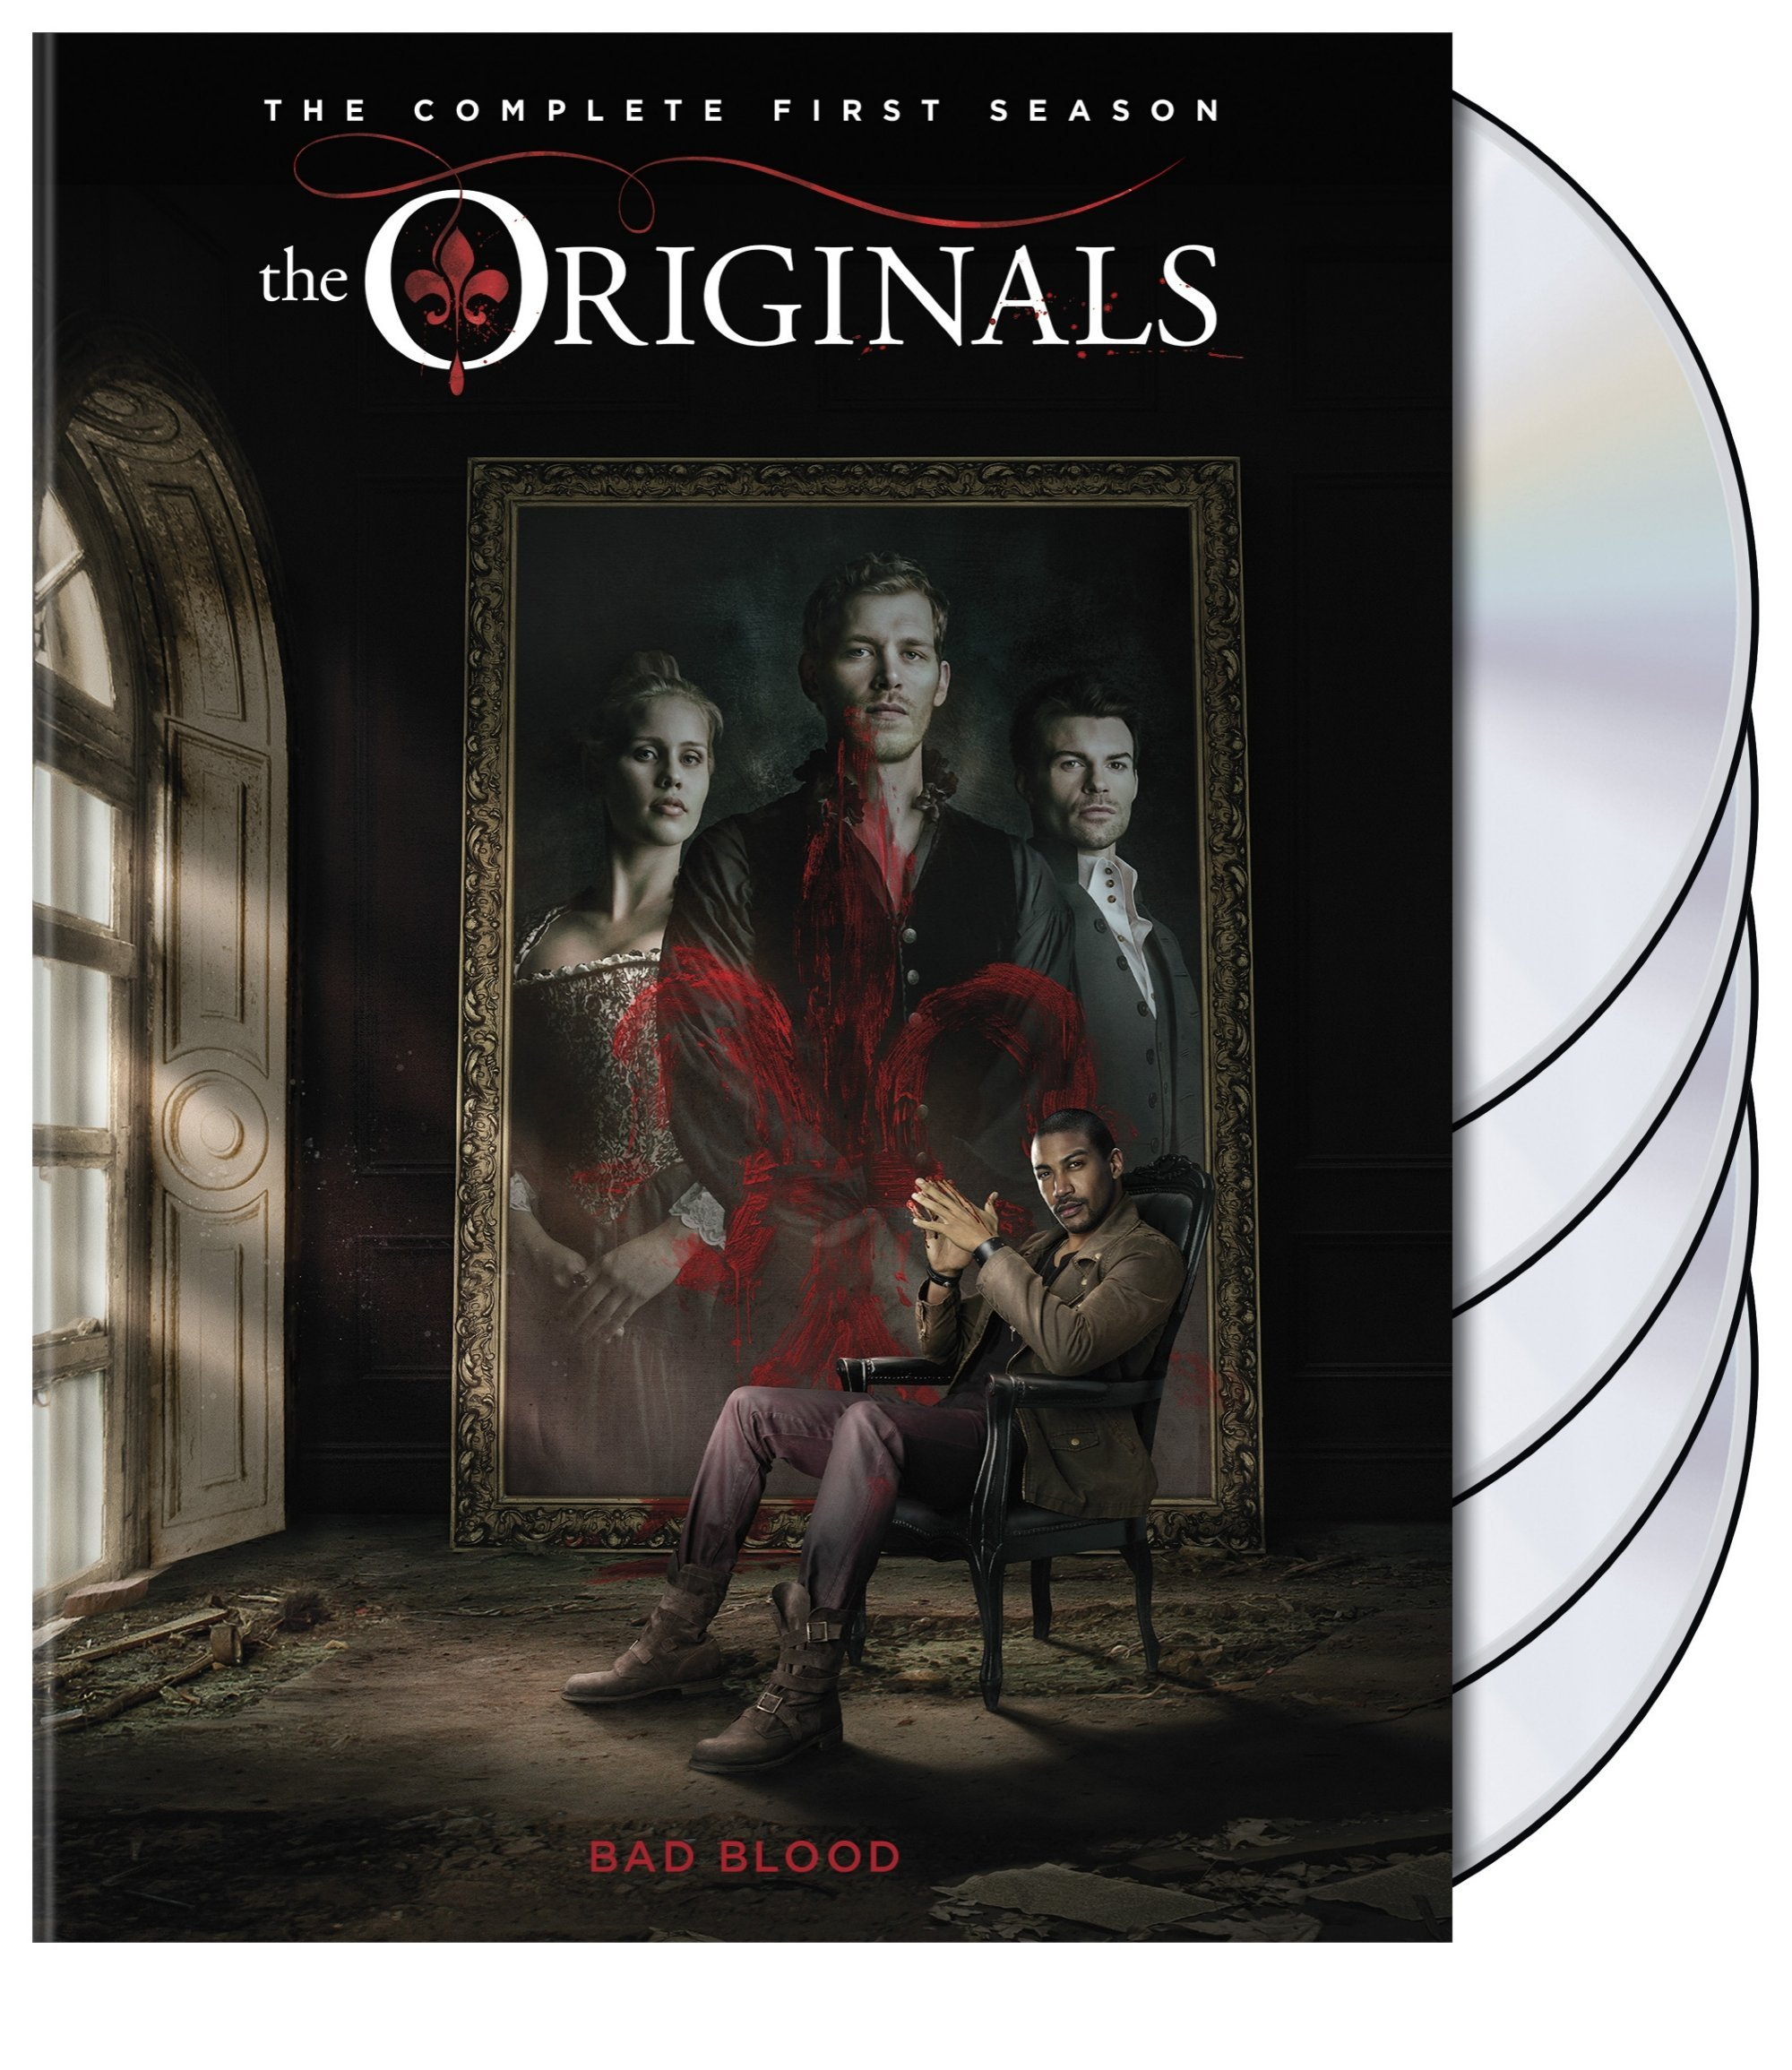 DVD : The Originals: The Complete First Season (Boxed Set, Slipsleeve Packaging, 5 Disc)